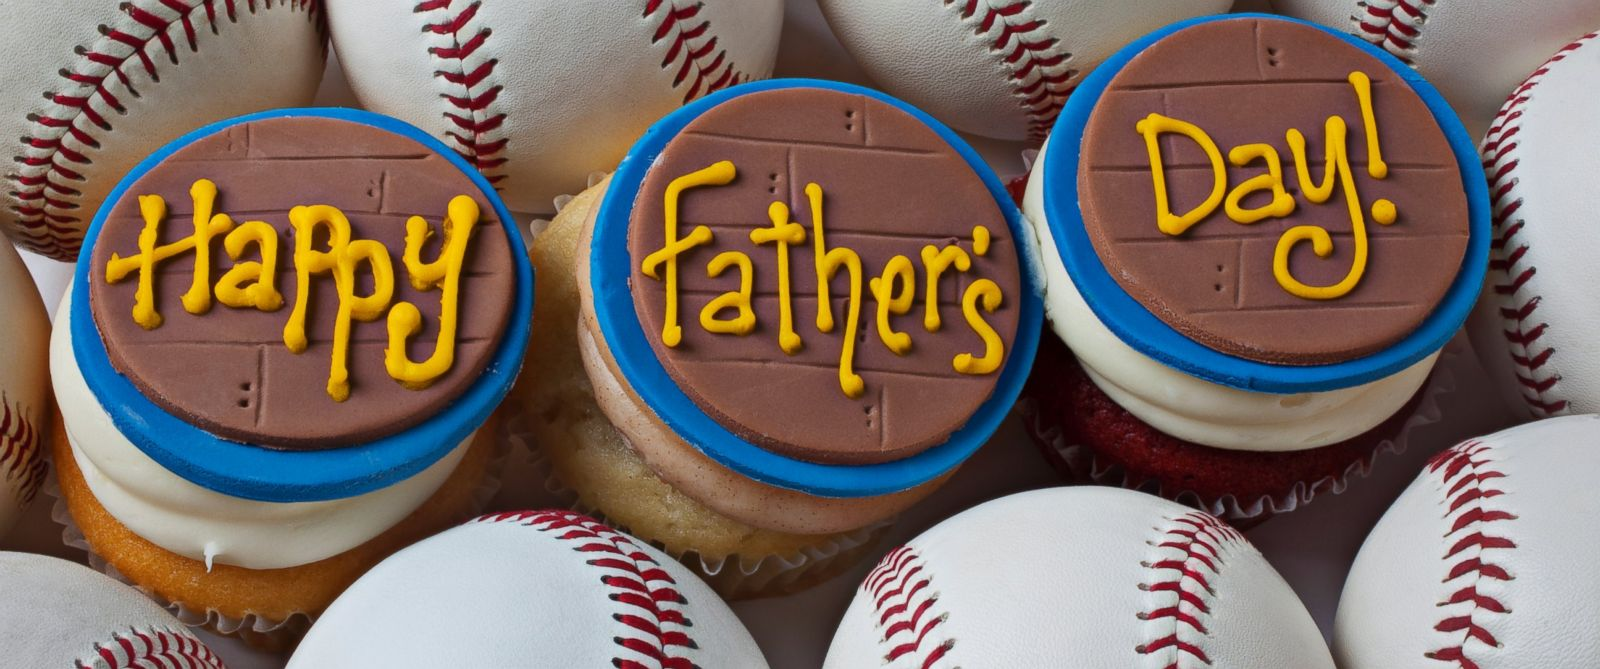 Father's Day_596256